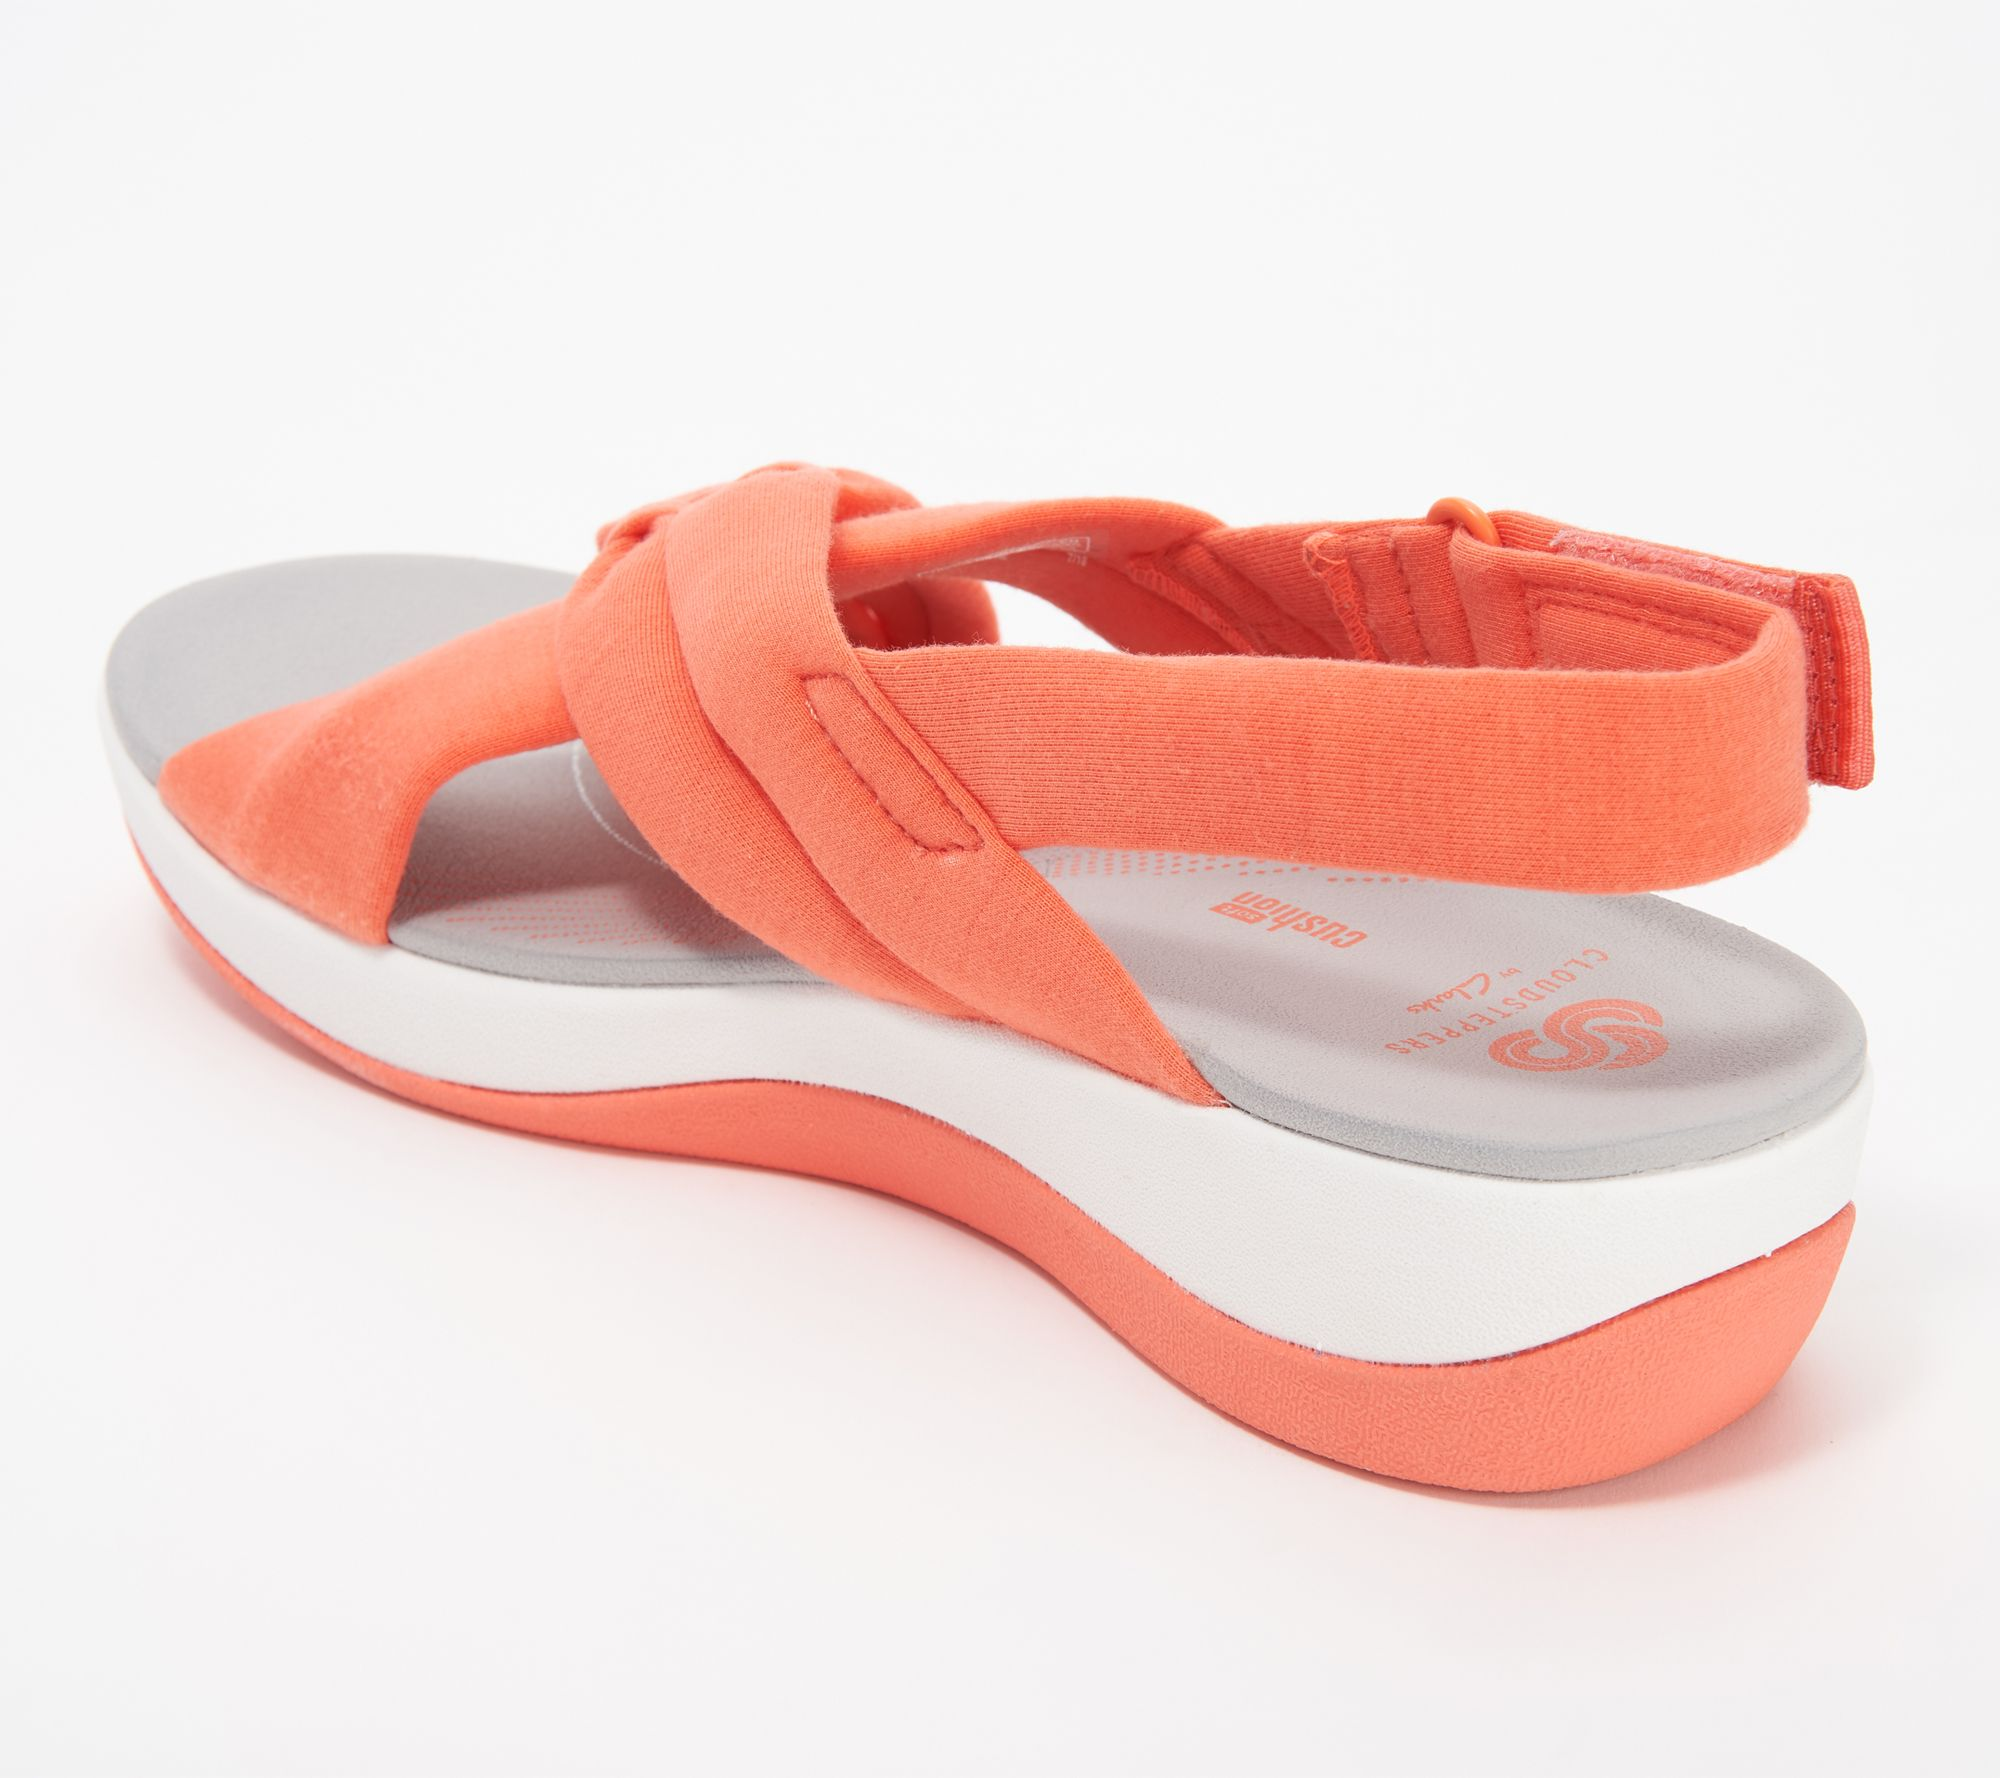 dbaa3393744 CLOUDSTEPPERS by Clarks Jersey Sport Sandals- Arla Belle - Page 1 — QVC.com